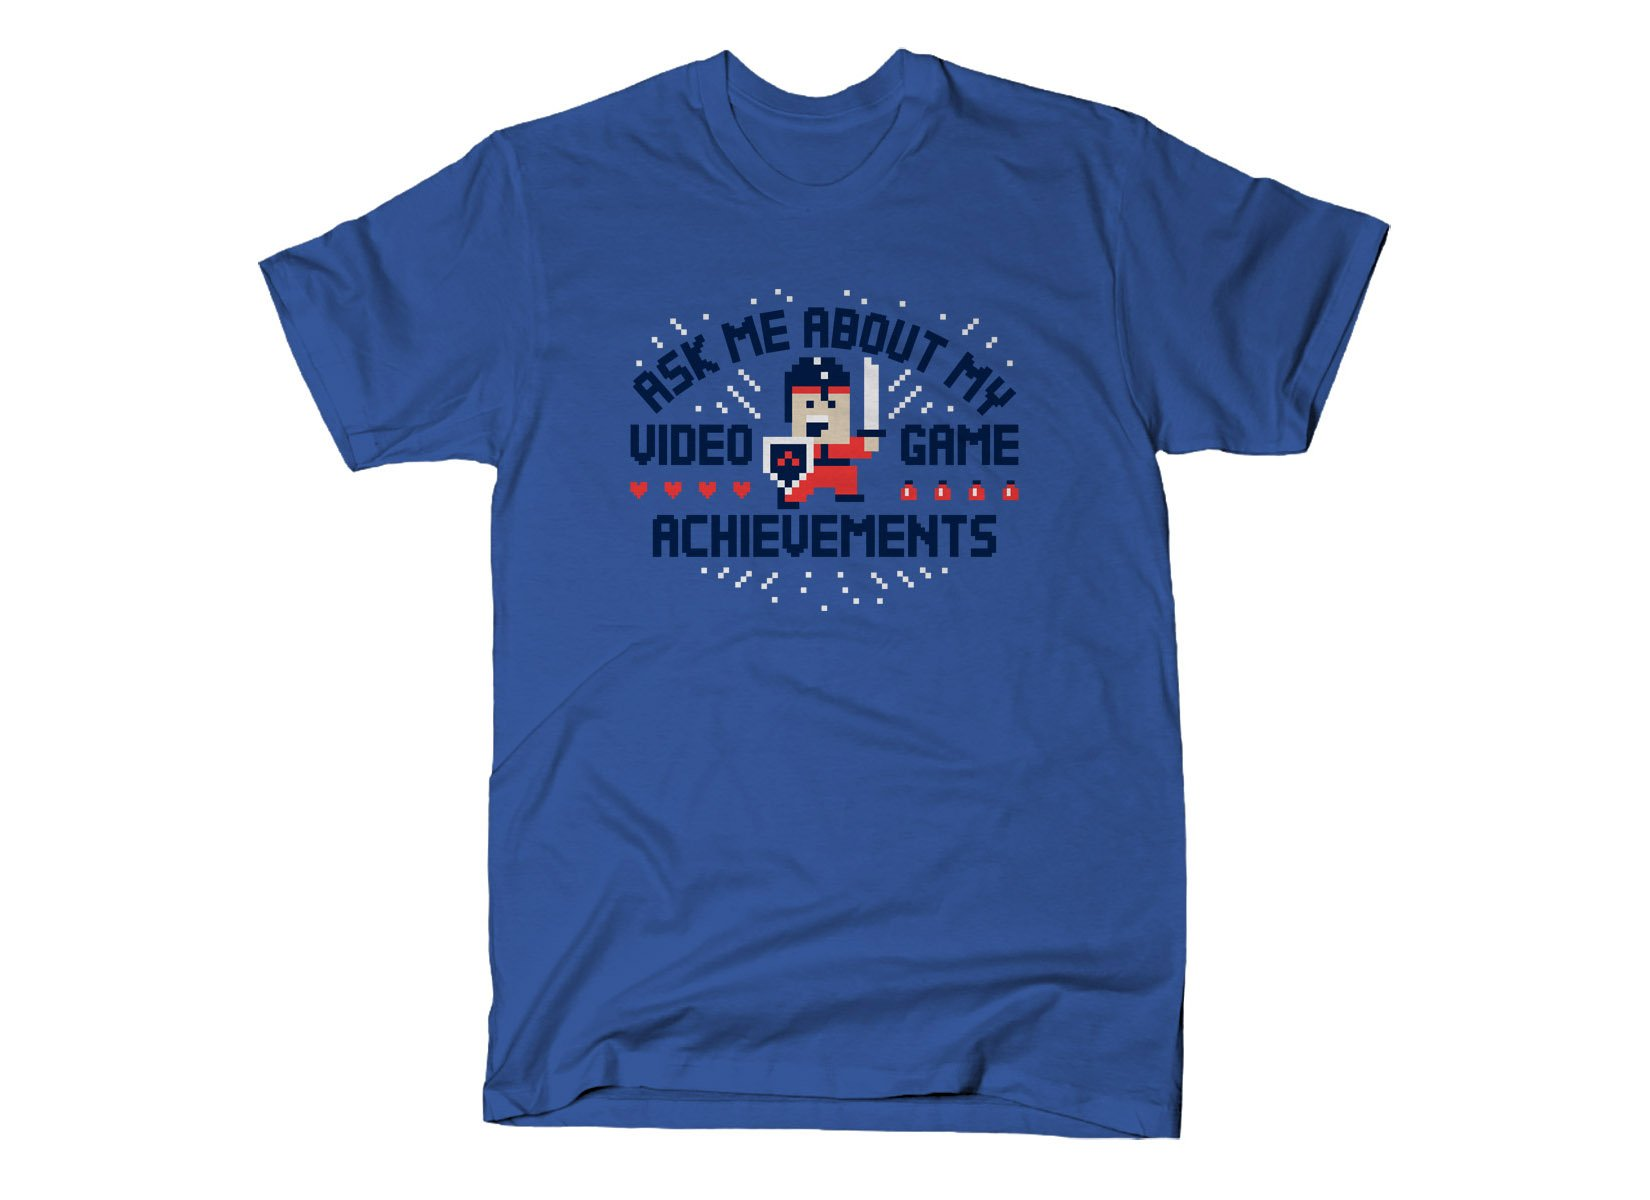 Ask Me About My Video Game Achievements on Mens T-Shirt